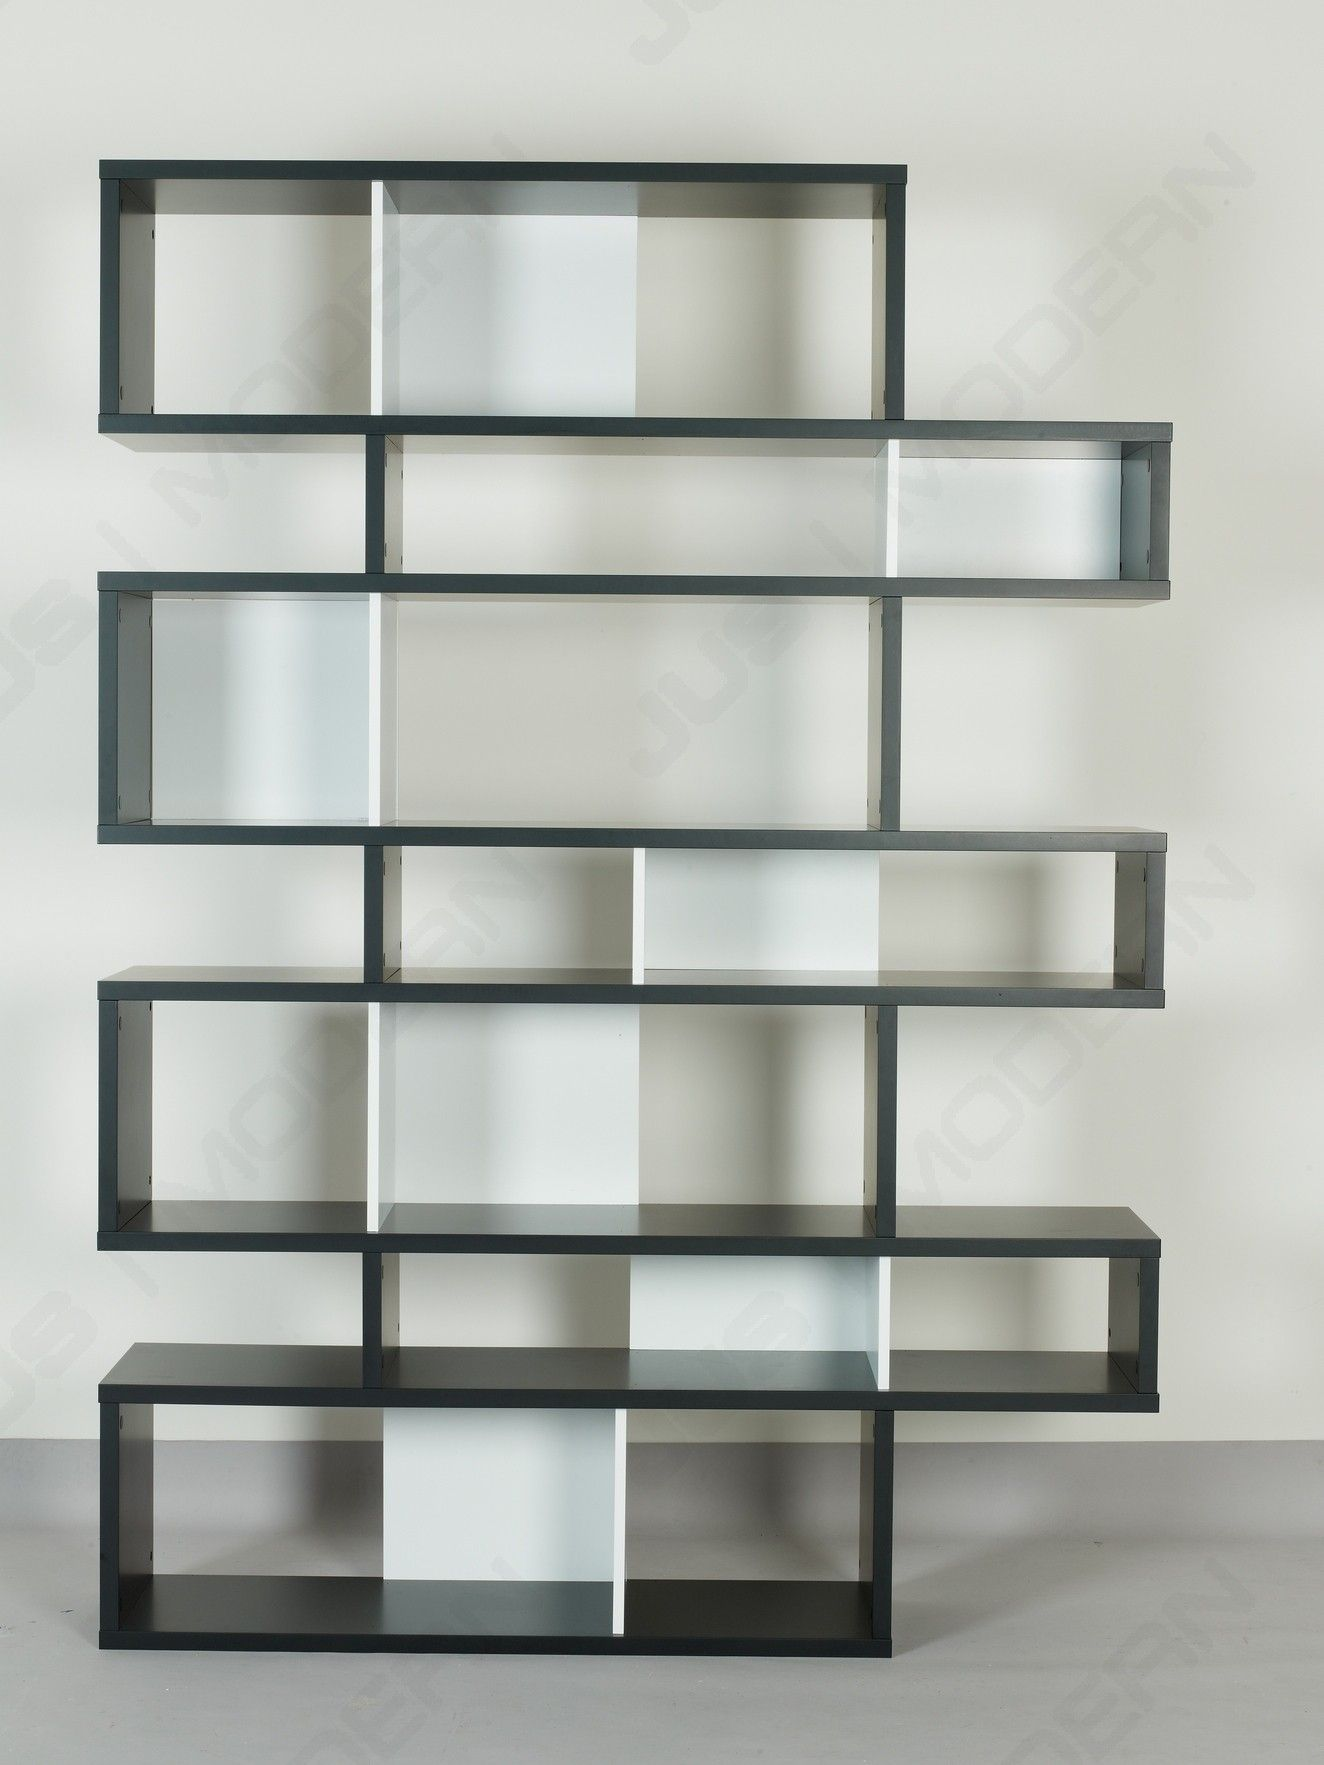 Impressive Design Of Black Wooden Shelving Unit Idea With White Shelves Dividers And Glass Doors Wooden Shelving Units White Wall Paint White Walls